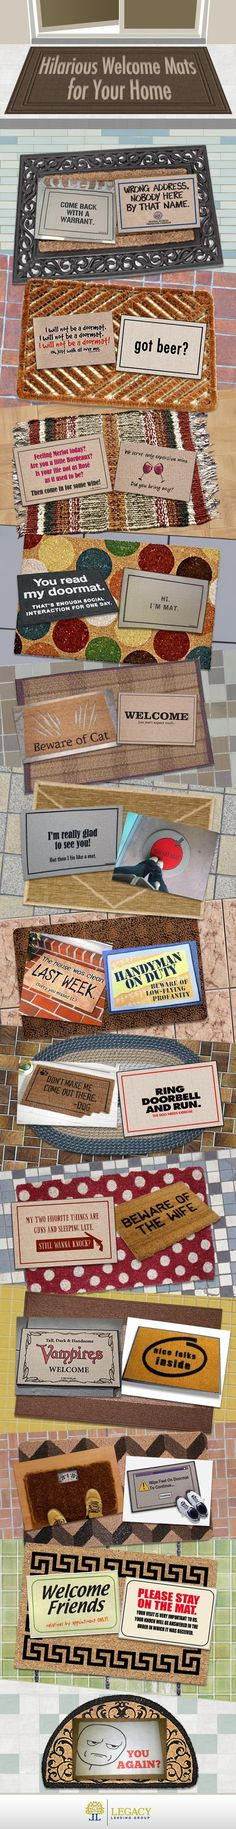 Hilarious Welcome Mats for Your New Home